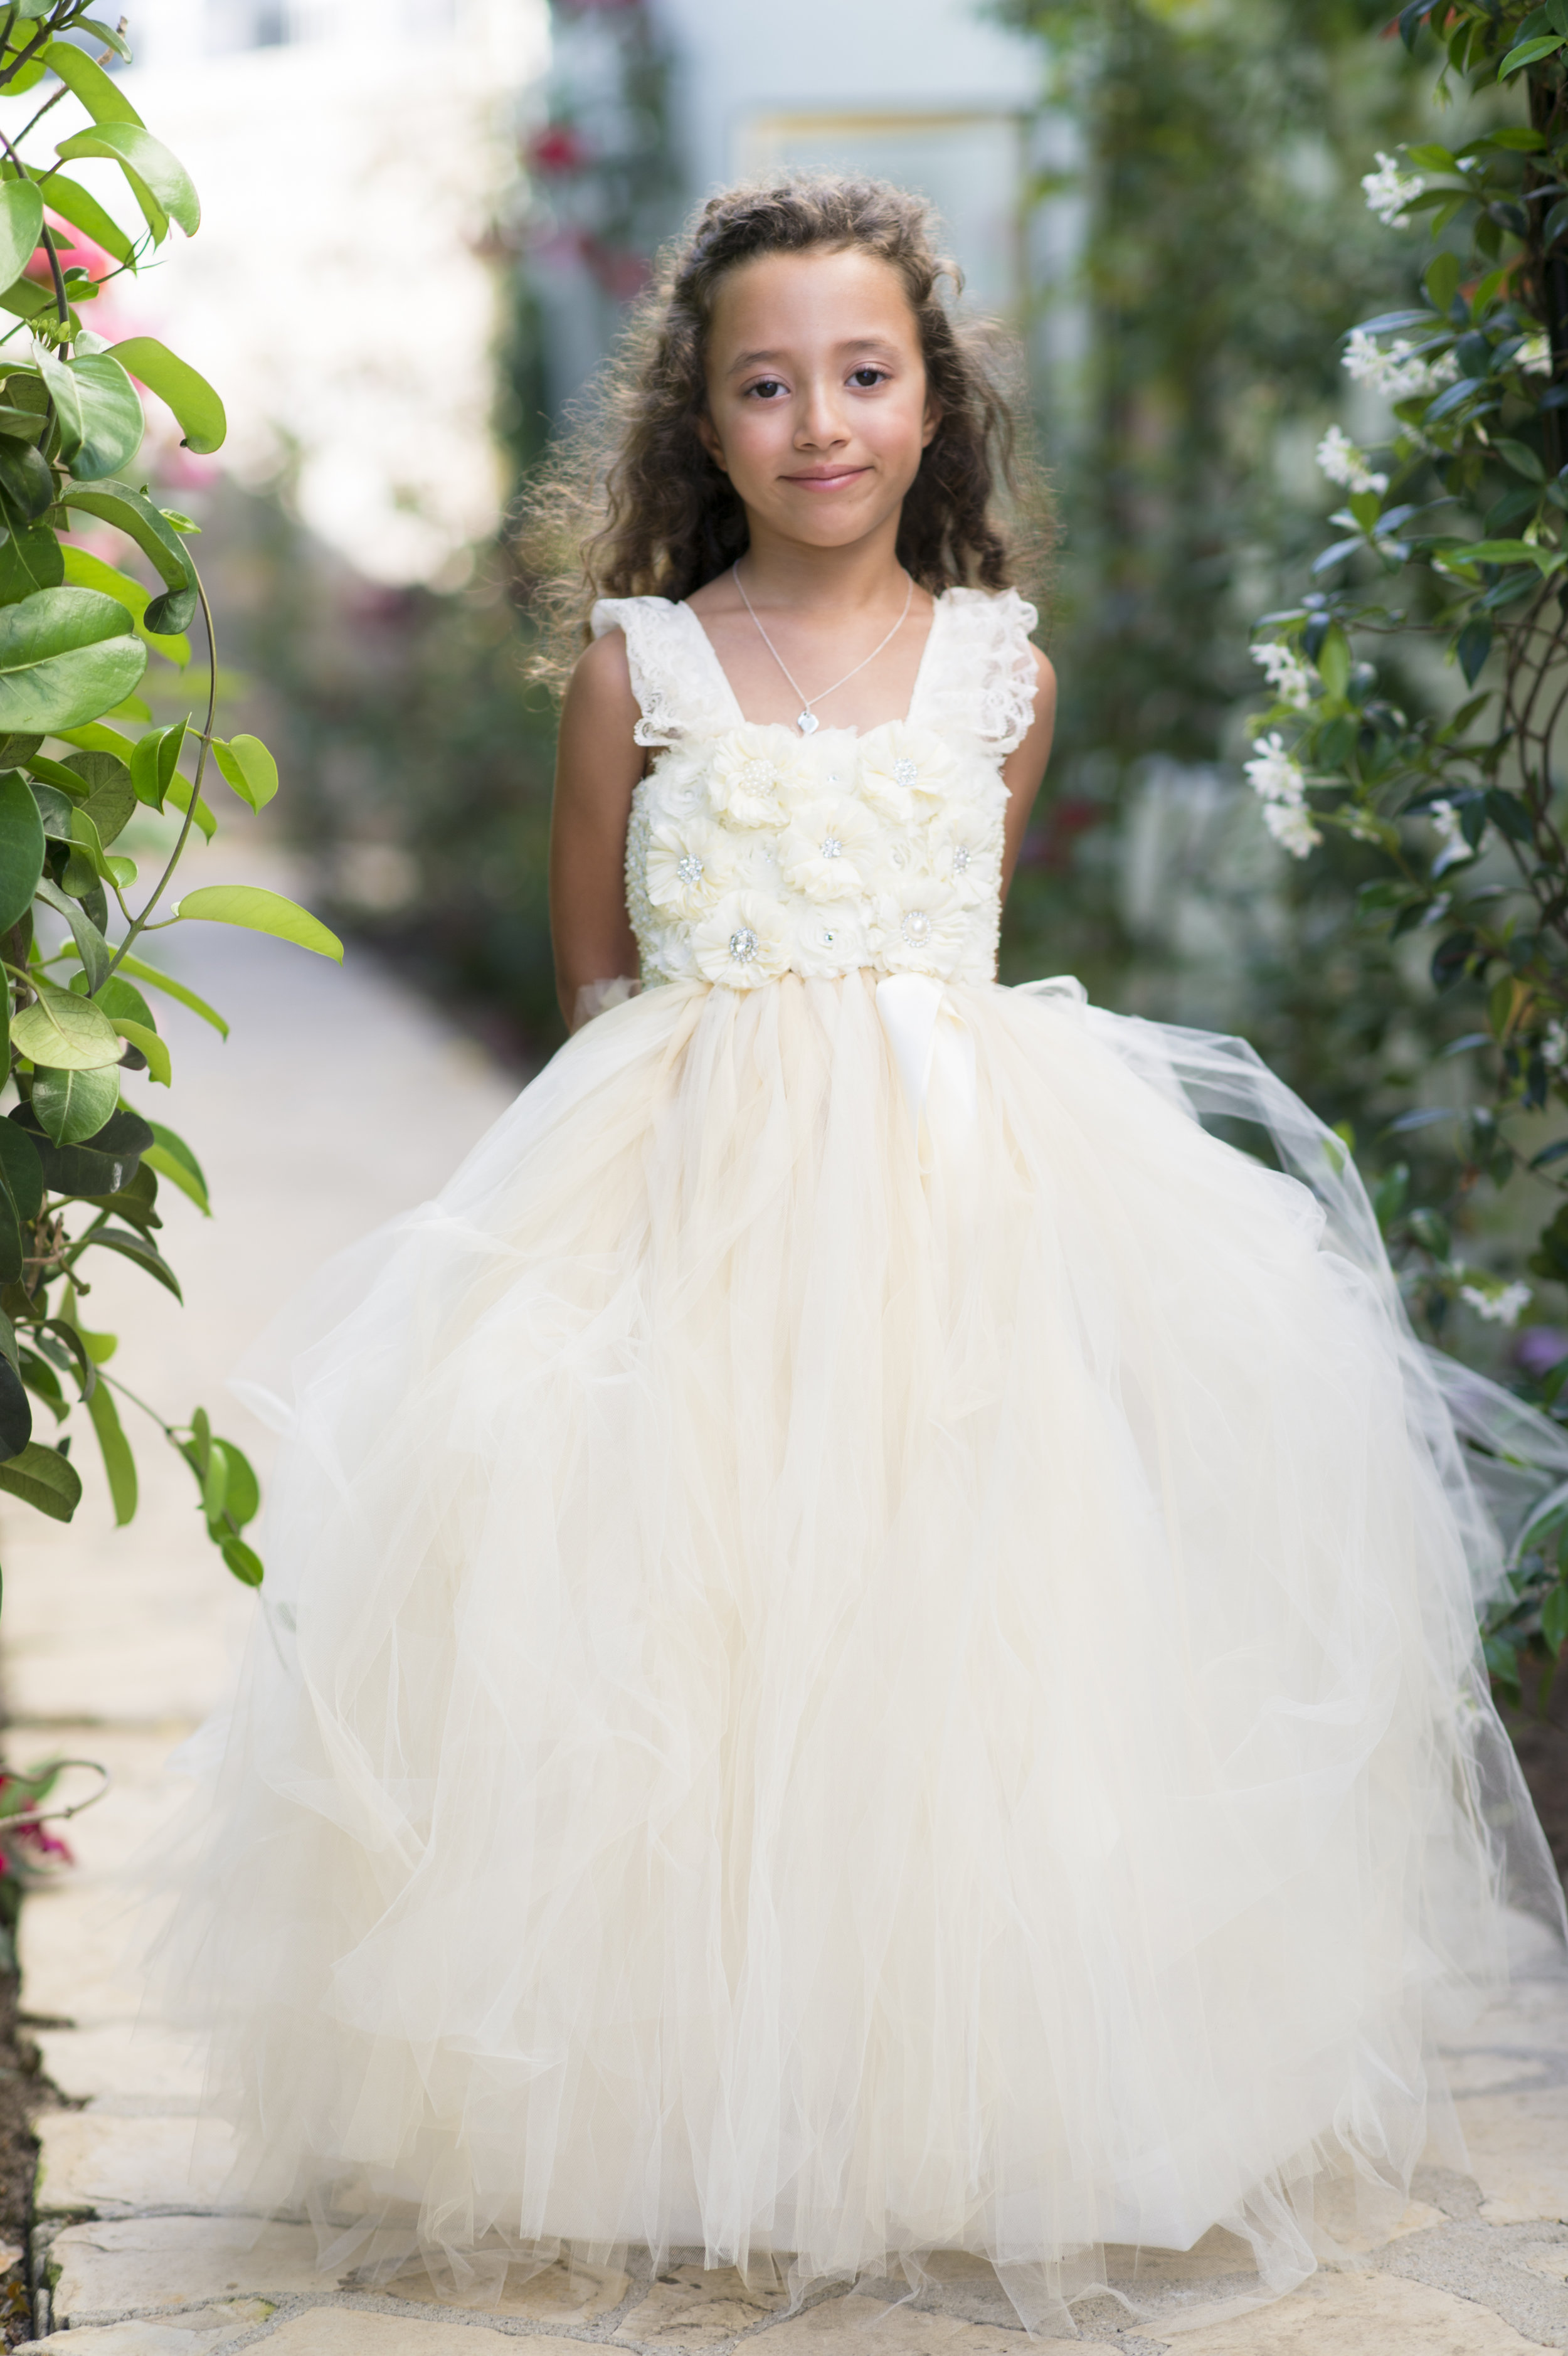 Ivory Flower Girl Dress - A Romantic Bel Air Bay Club Ocean-View Wedding - Southern California Wedding - Kevin Dinh Photography